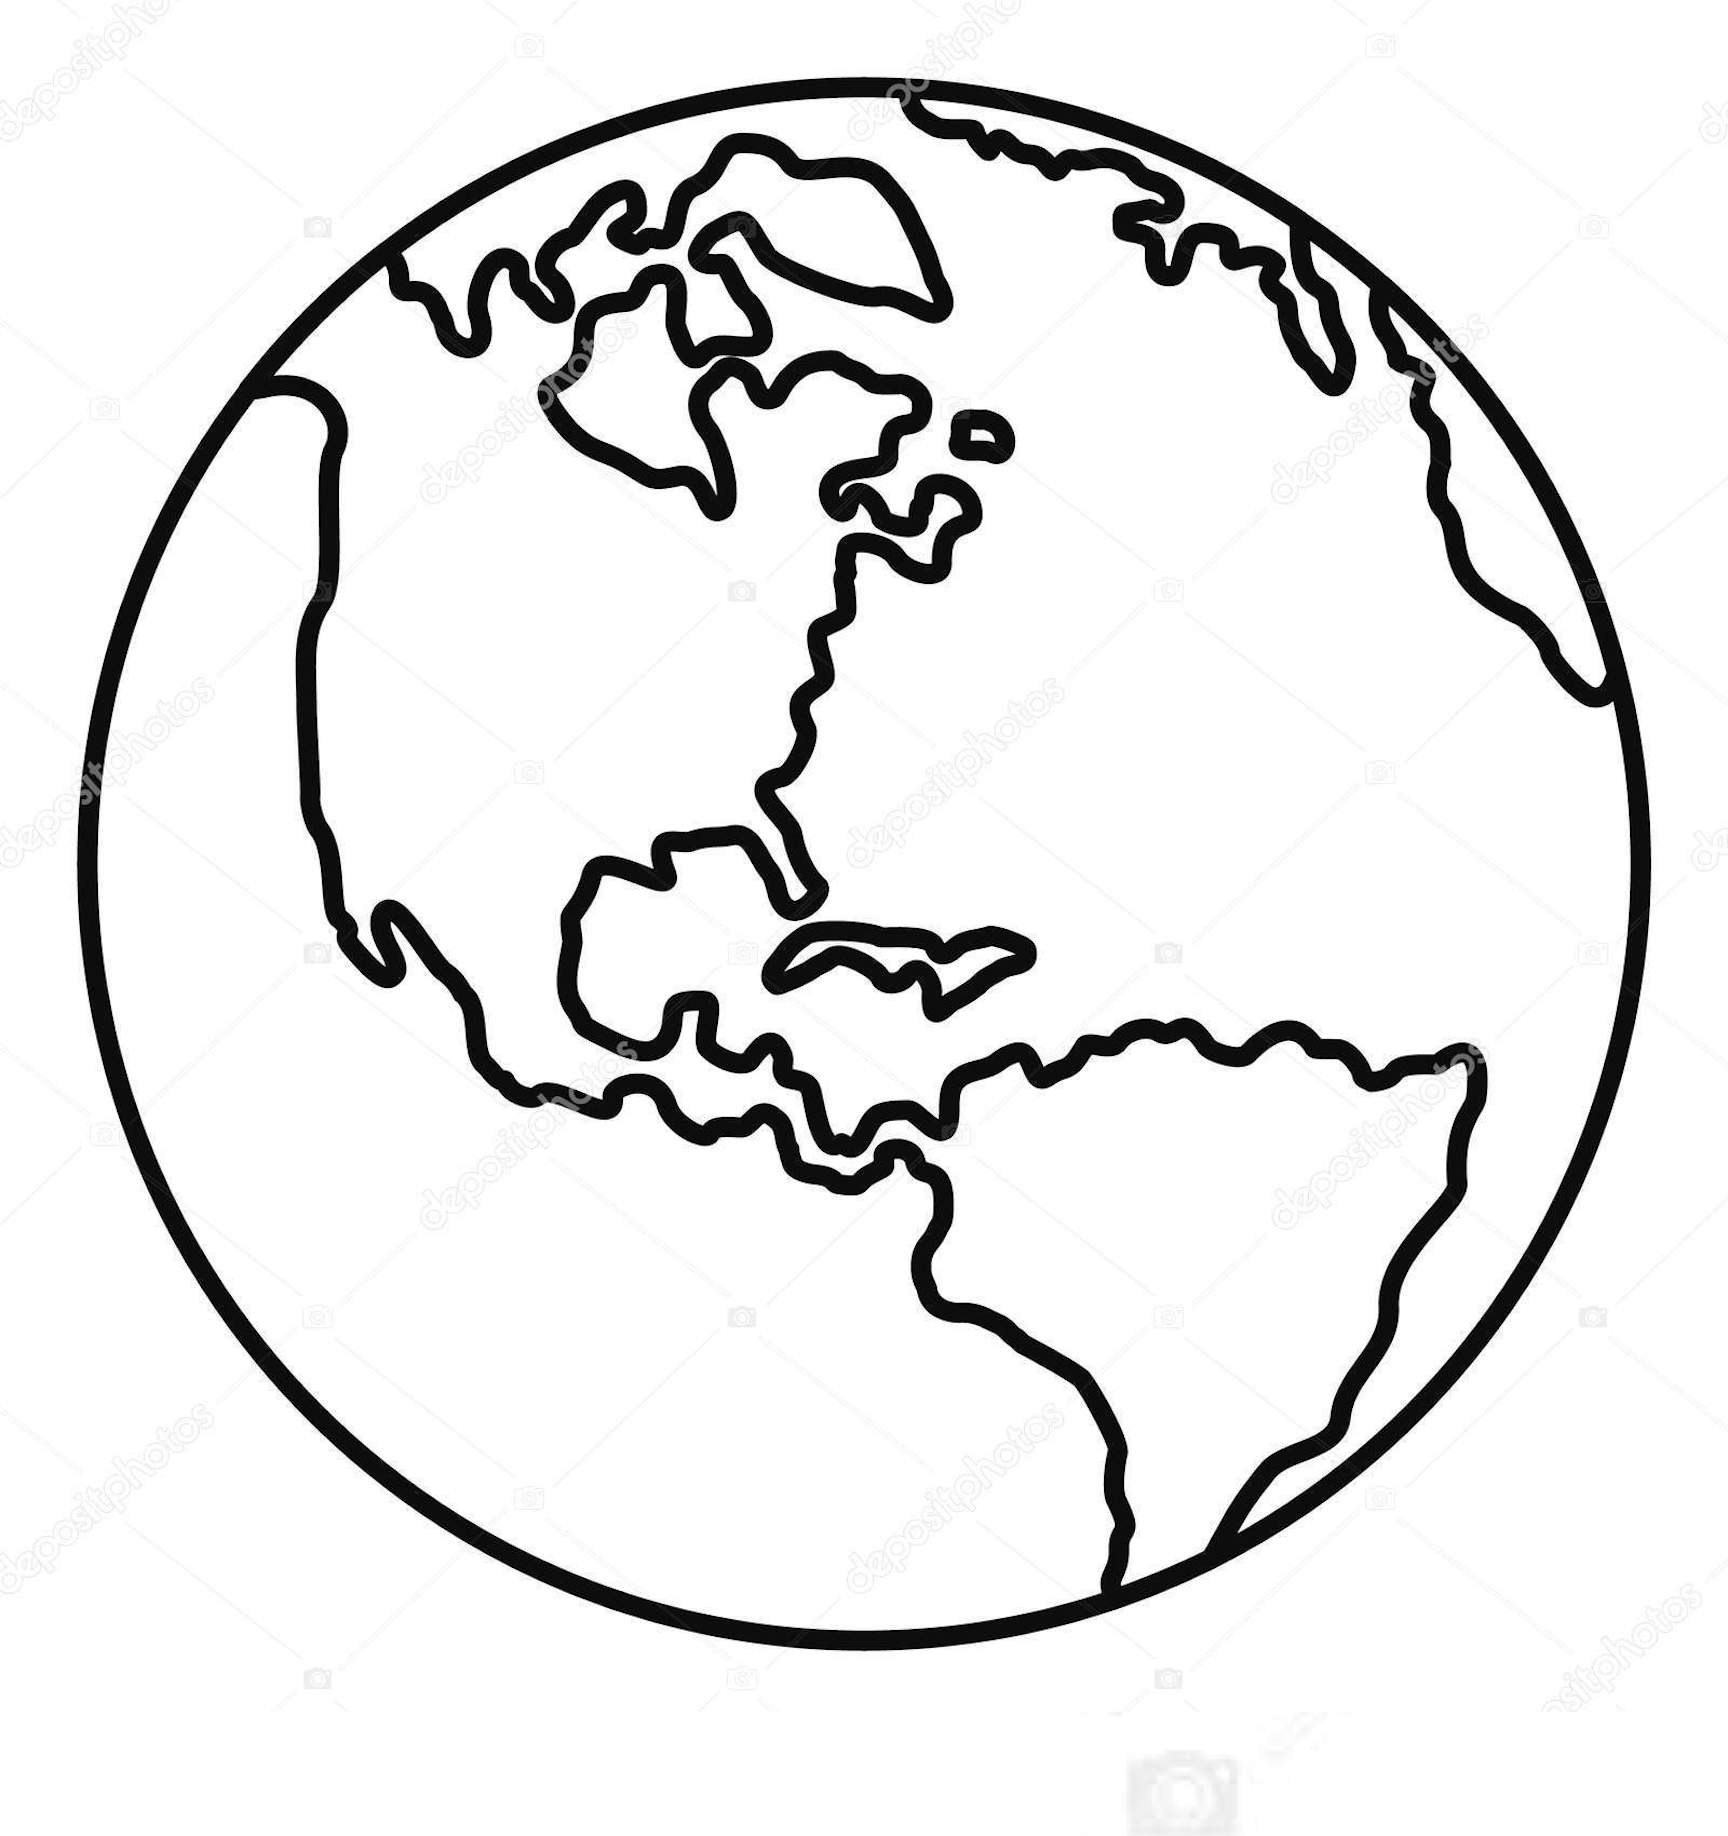 earth coloring sheet earth day coloring pages free printable earth day coloring earth sheet